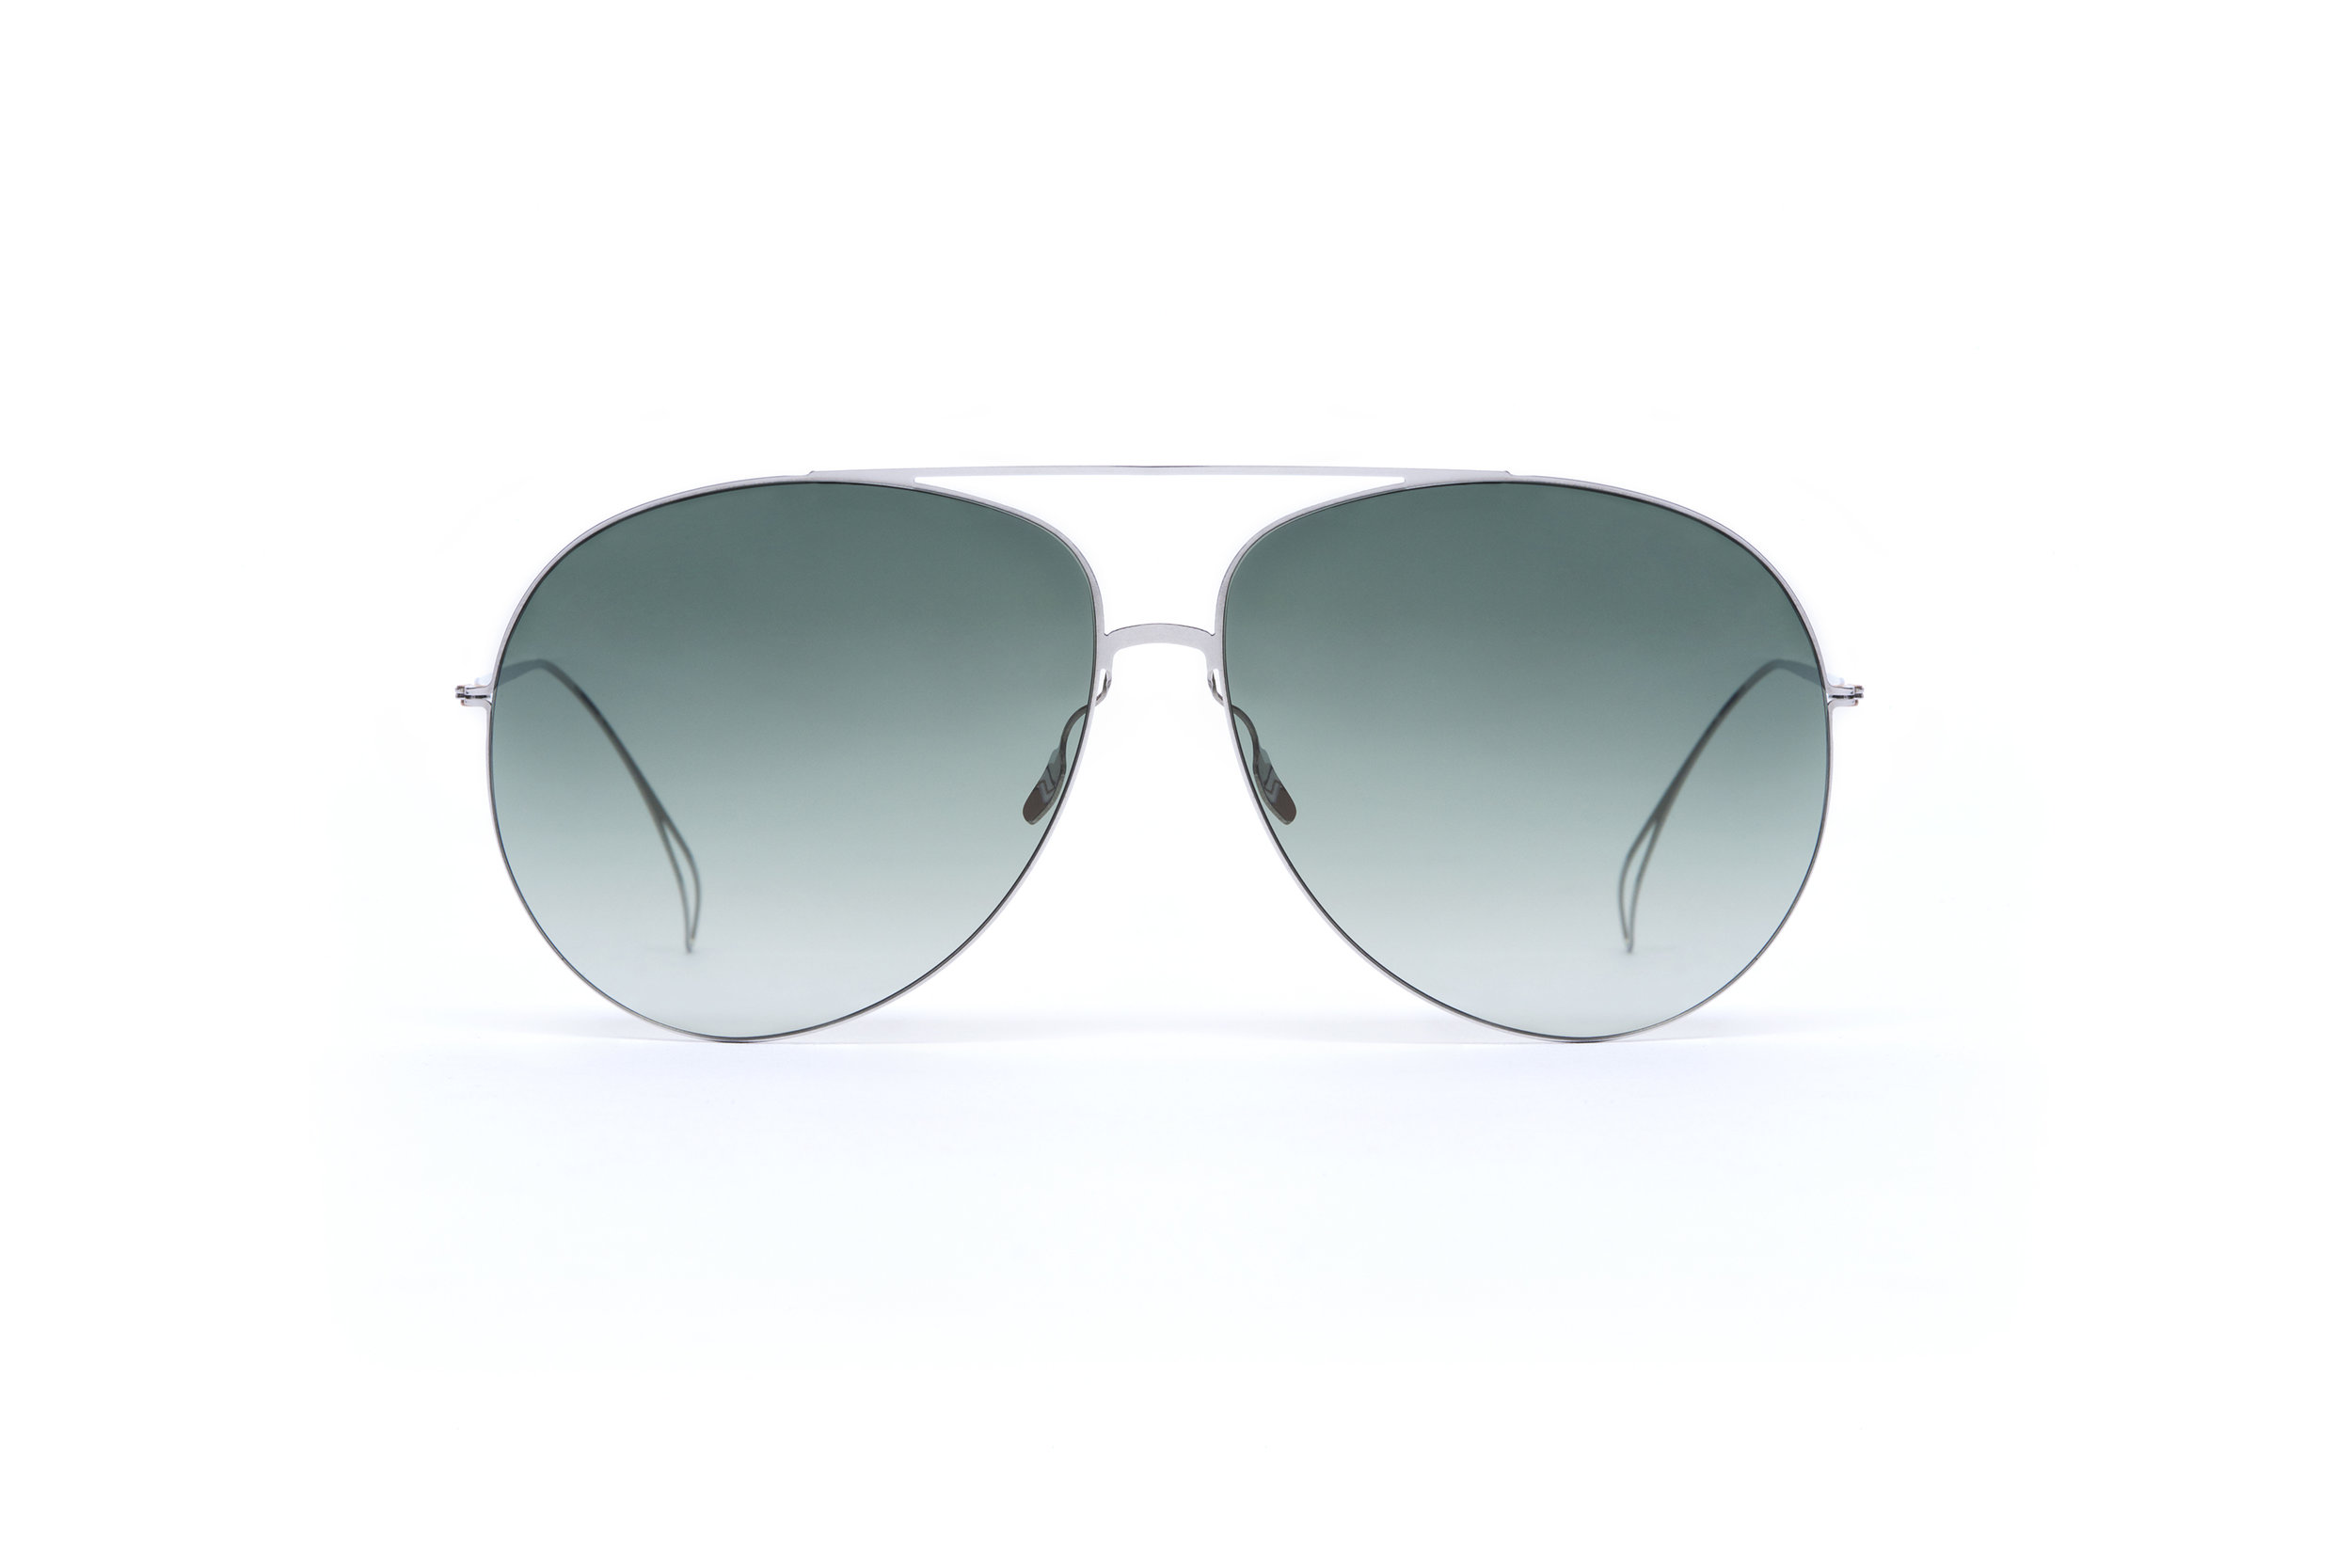 haffmans_neumeister_curtiss_silver_amazon_gradient_ultralight_sunglasses_front_102480.jpg